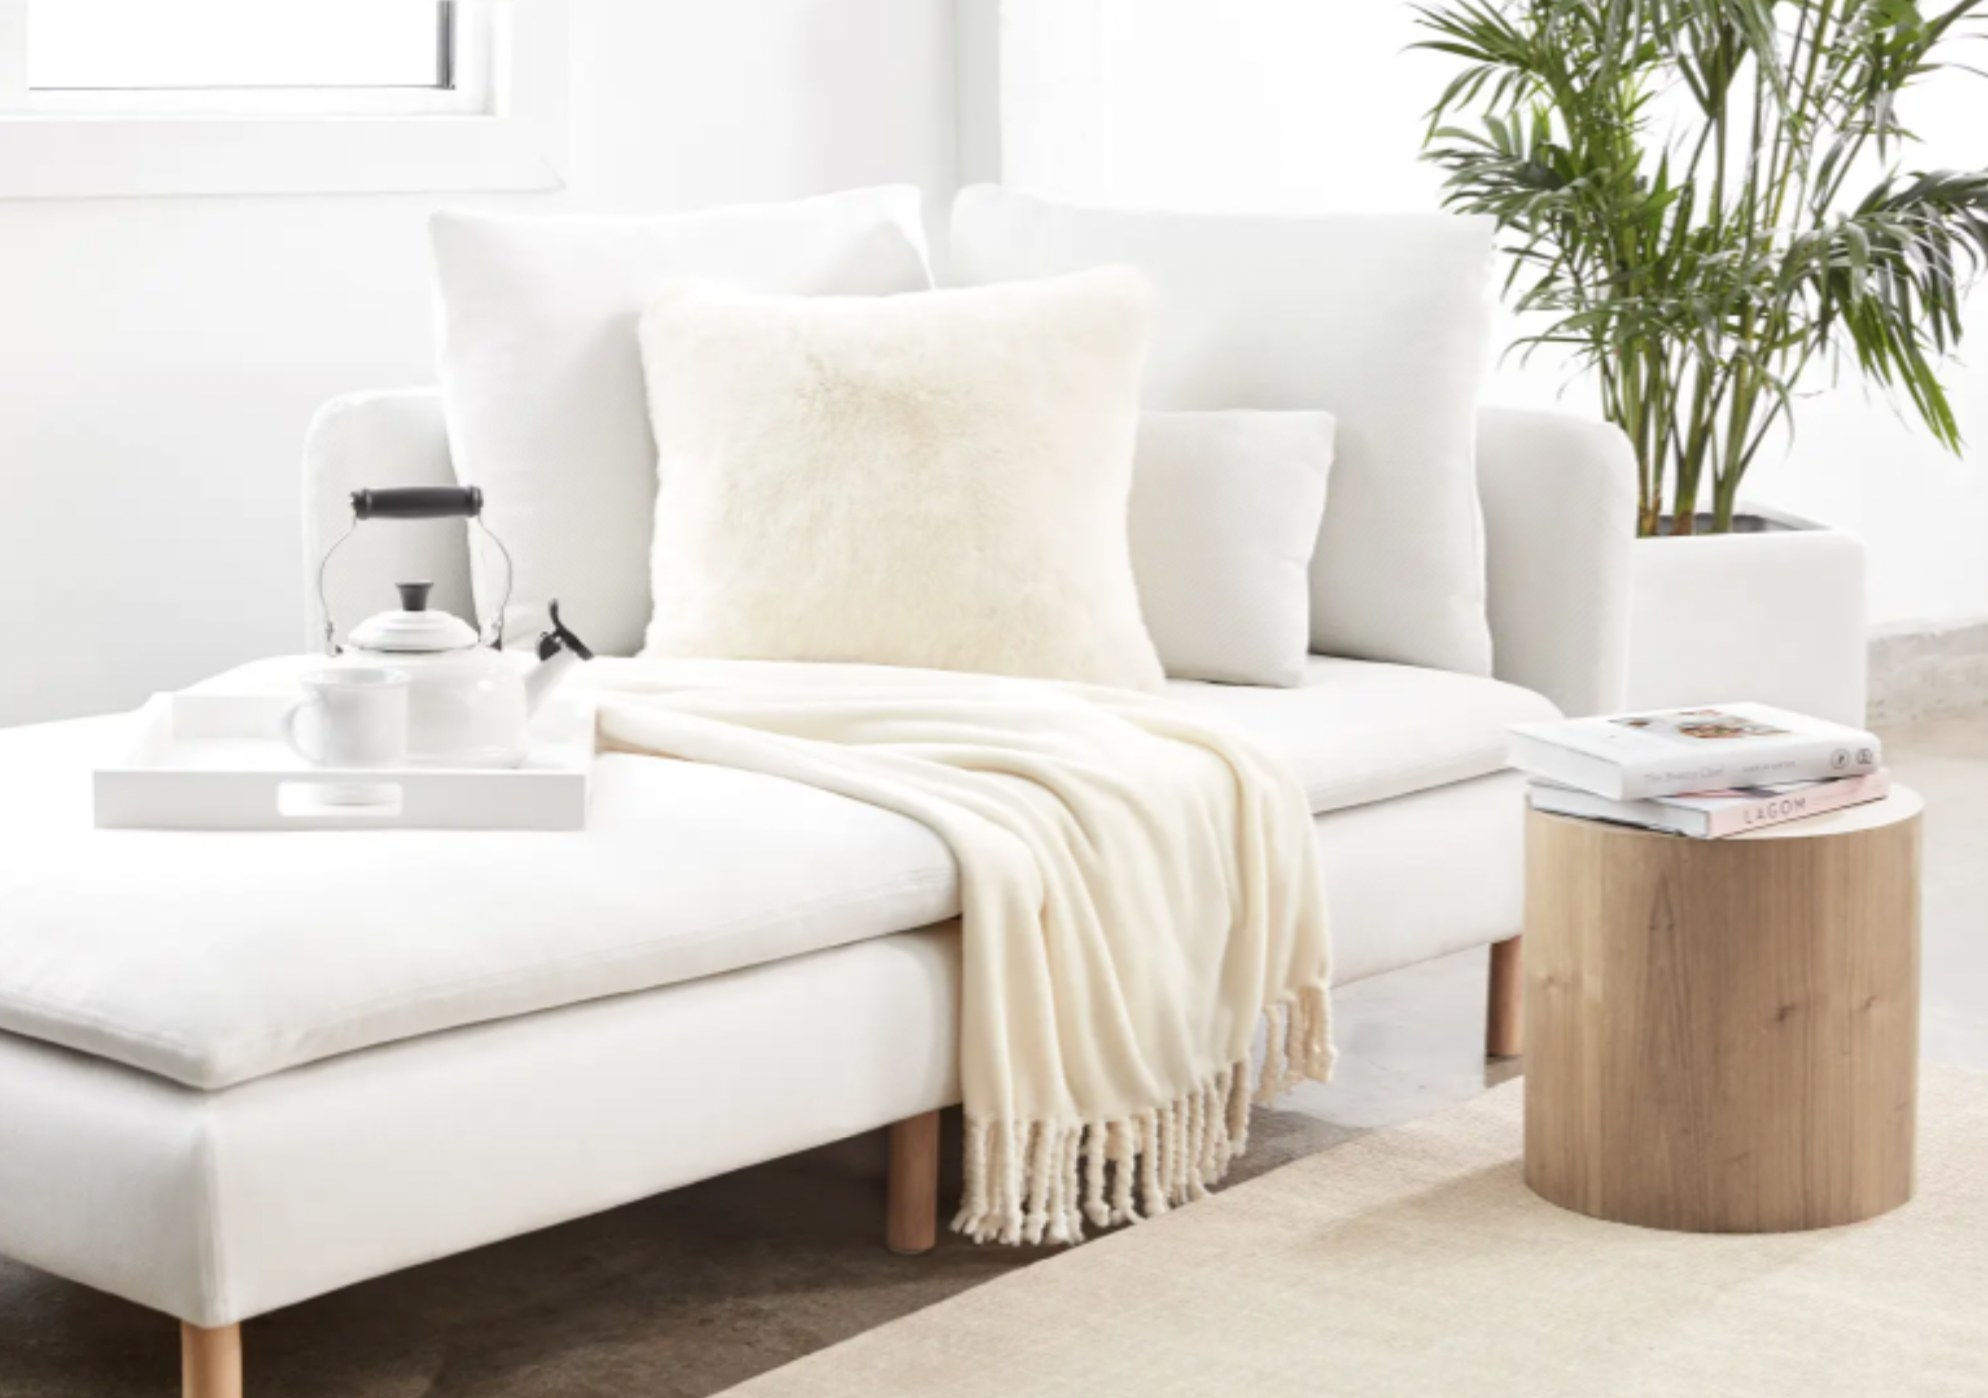 a vanilla throw draping over a couch in a living room